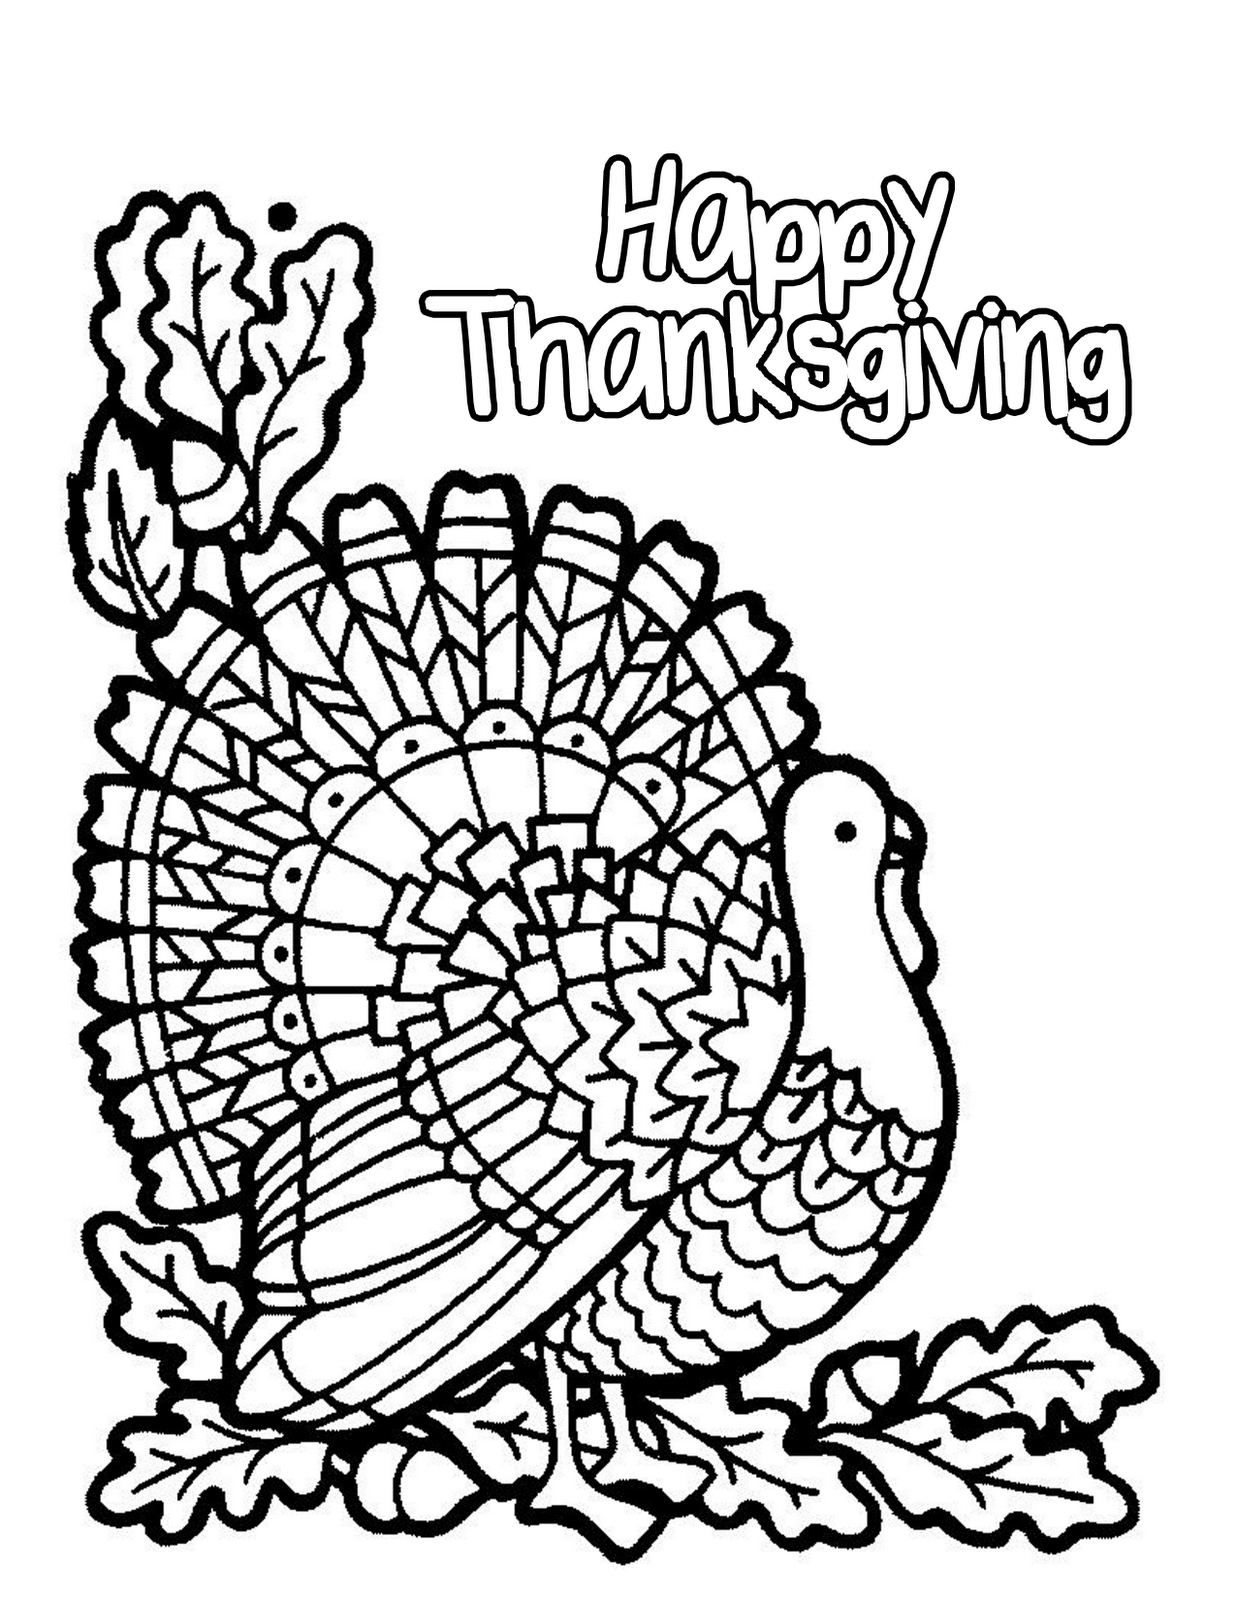 disney thanksgiving coloring pages - photo#20